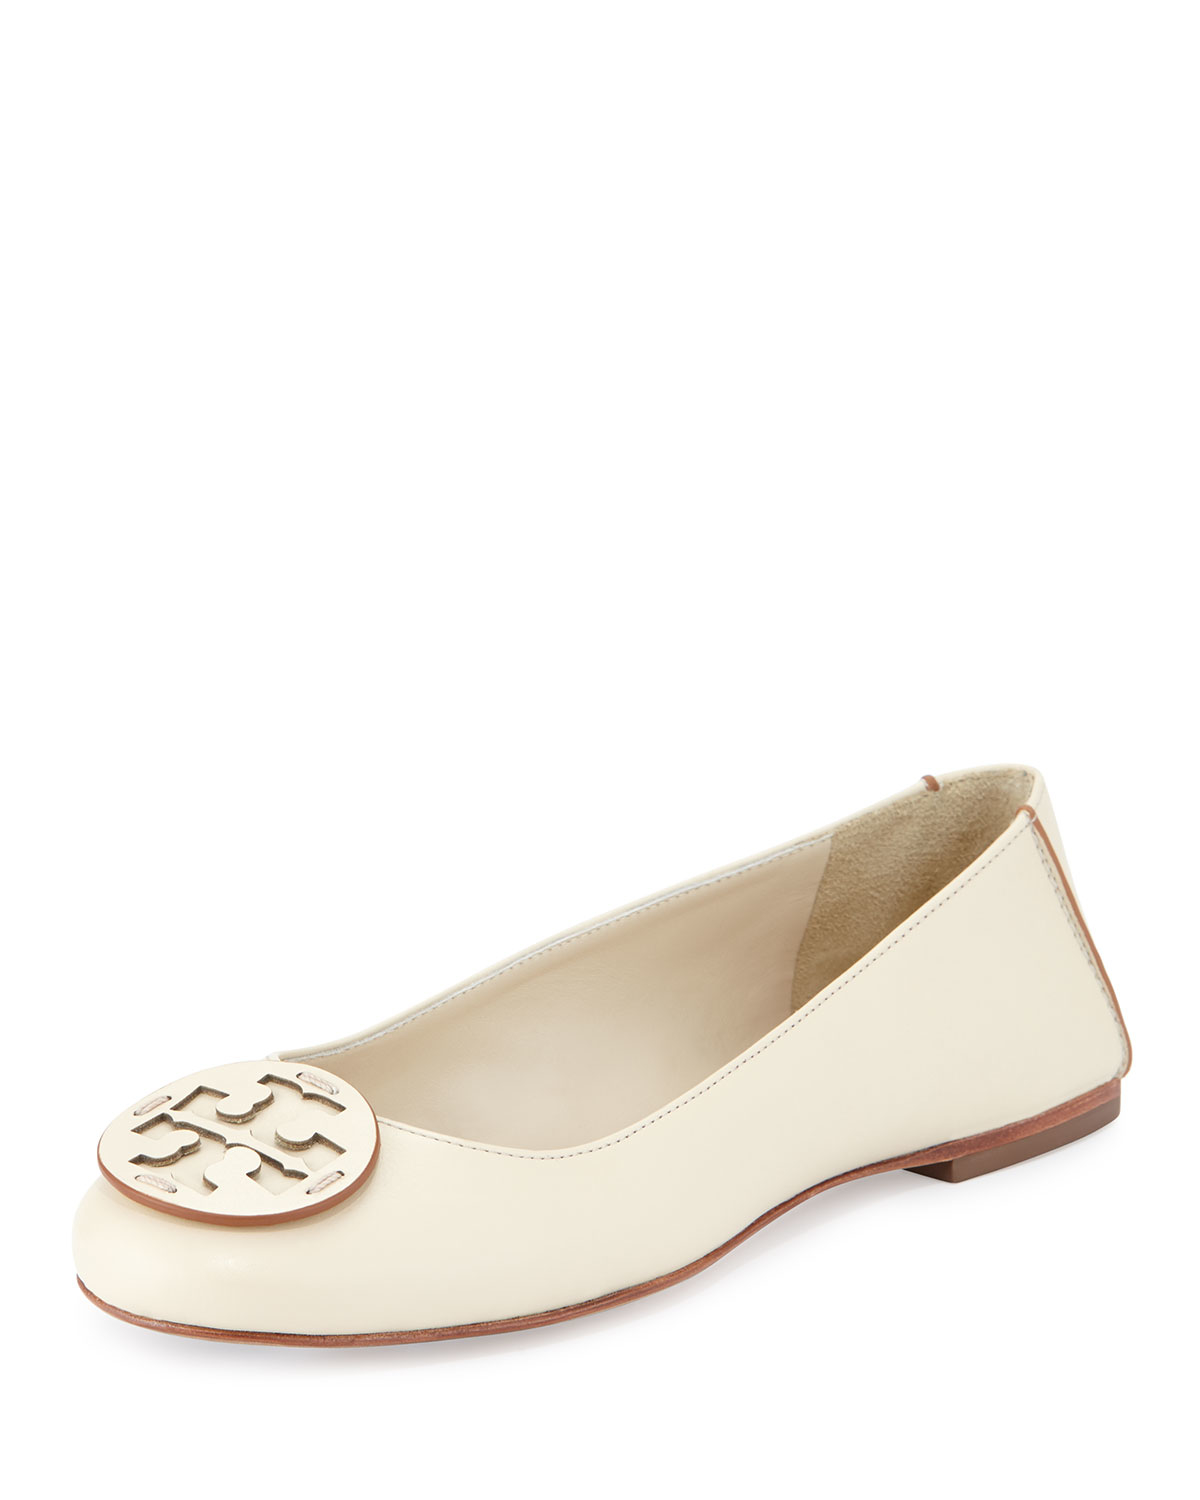 1c0dcae6091b Lyst - Tory Burch Reva Leather Ballet Flats in Natural